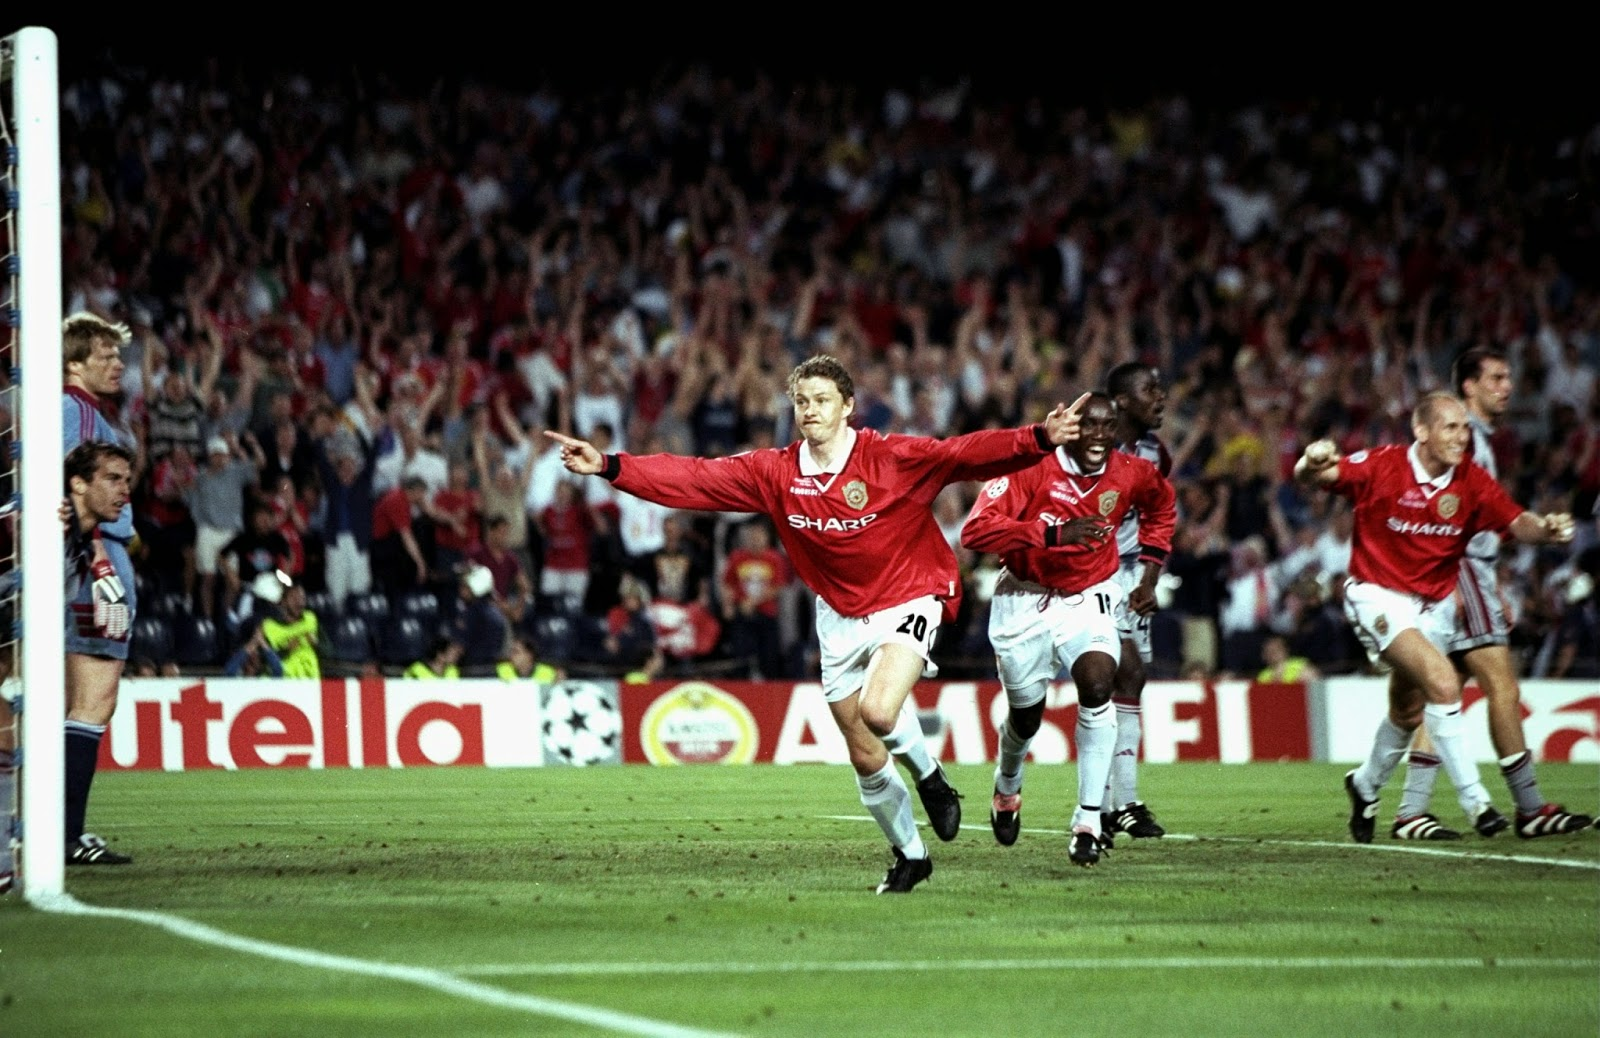 1999 Champions League Final - Manchester United v Bayern Munich